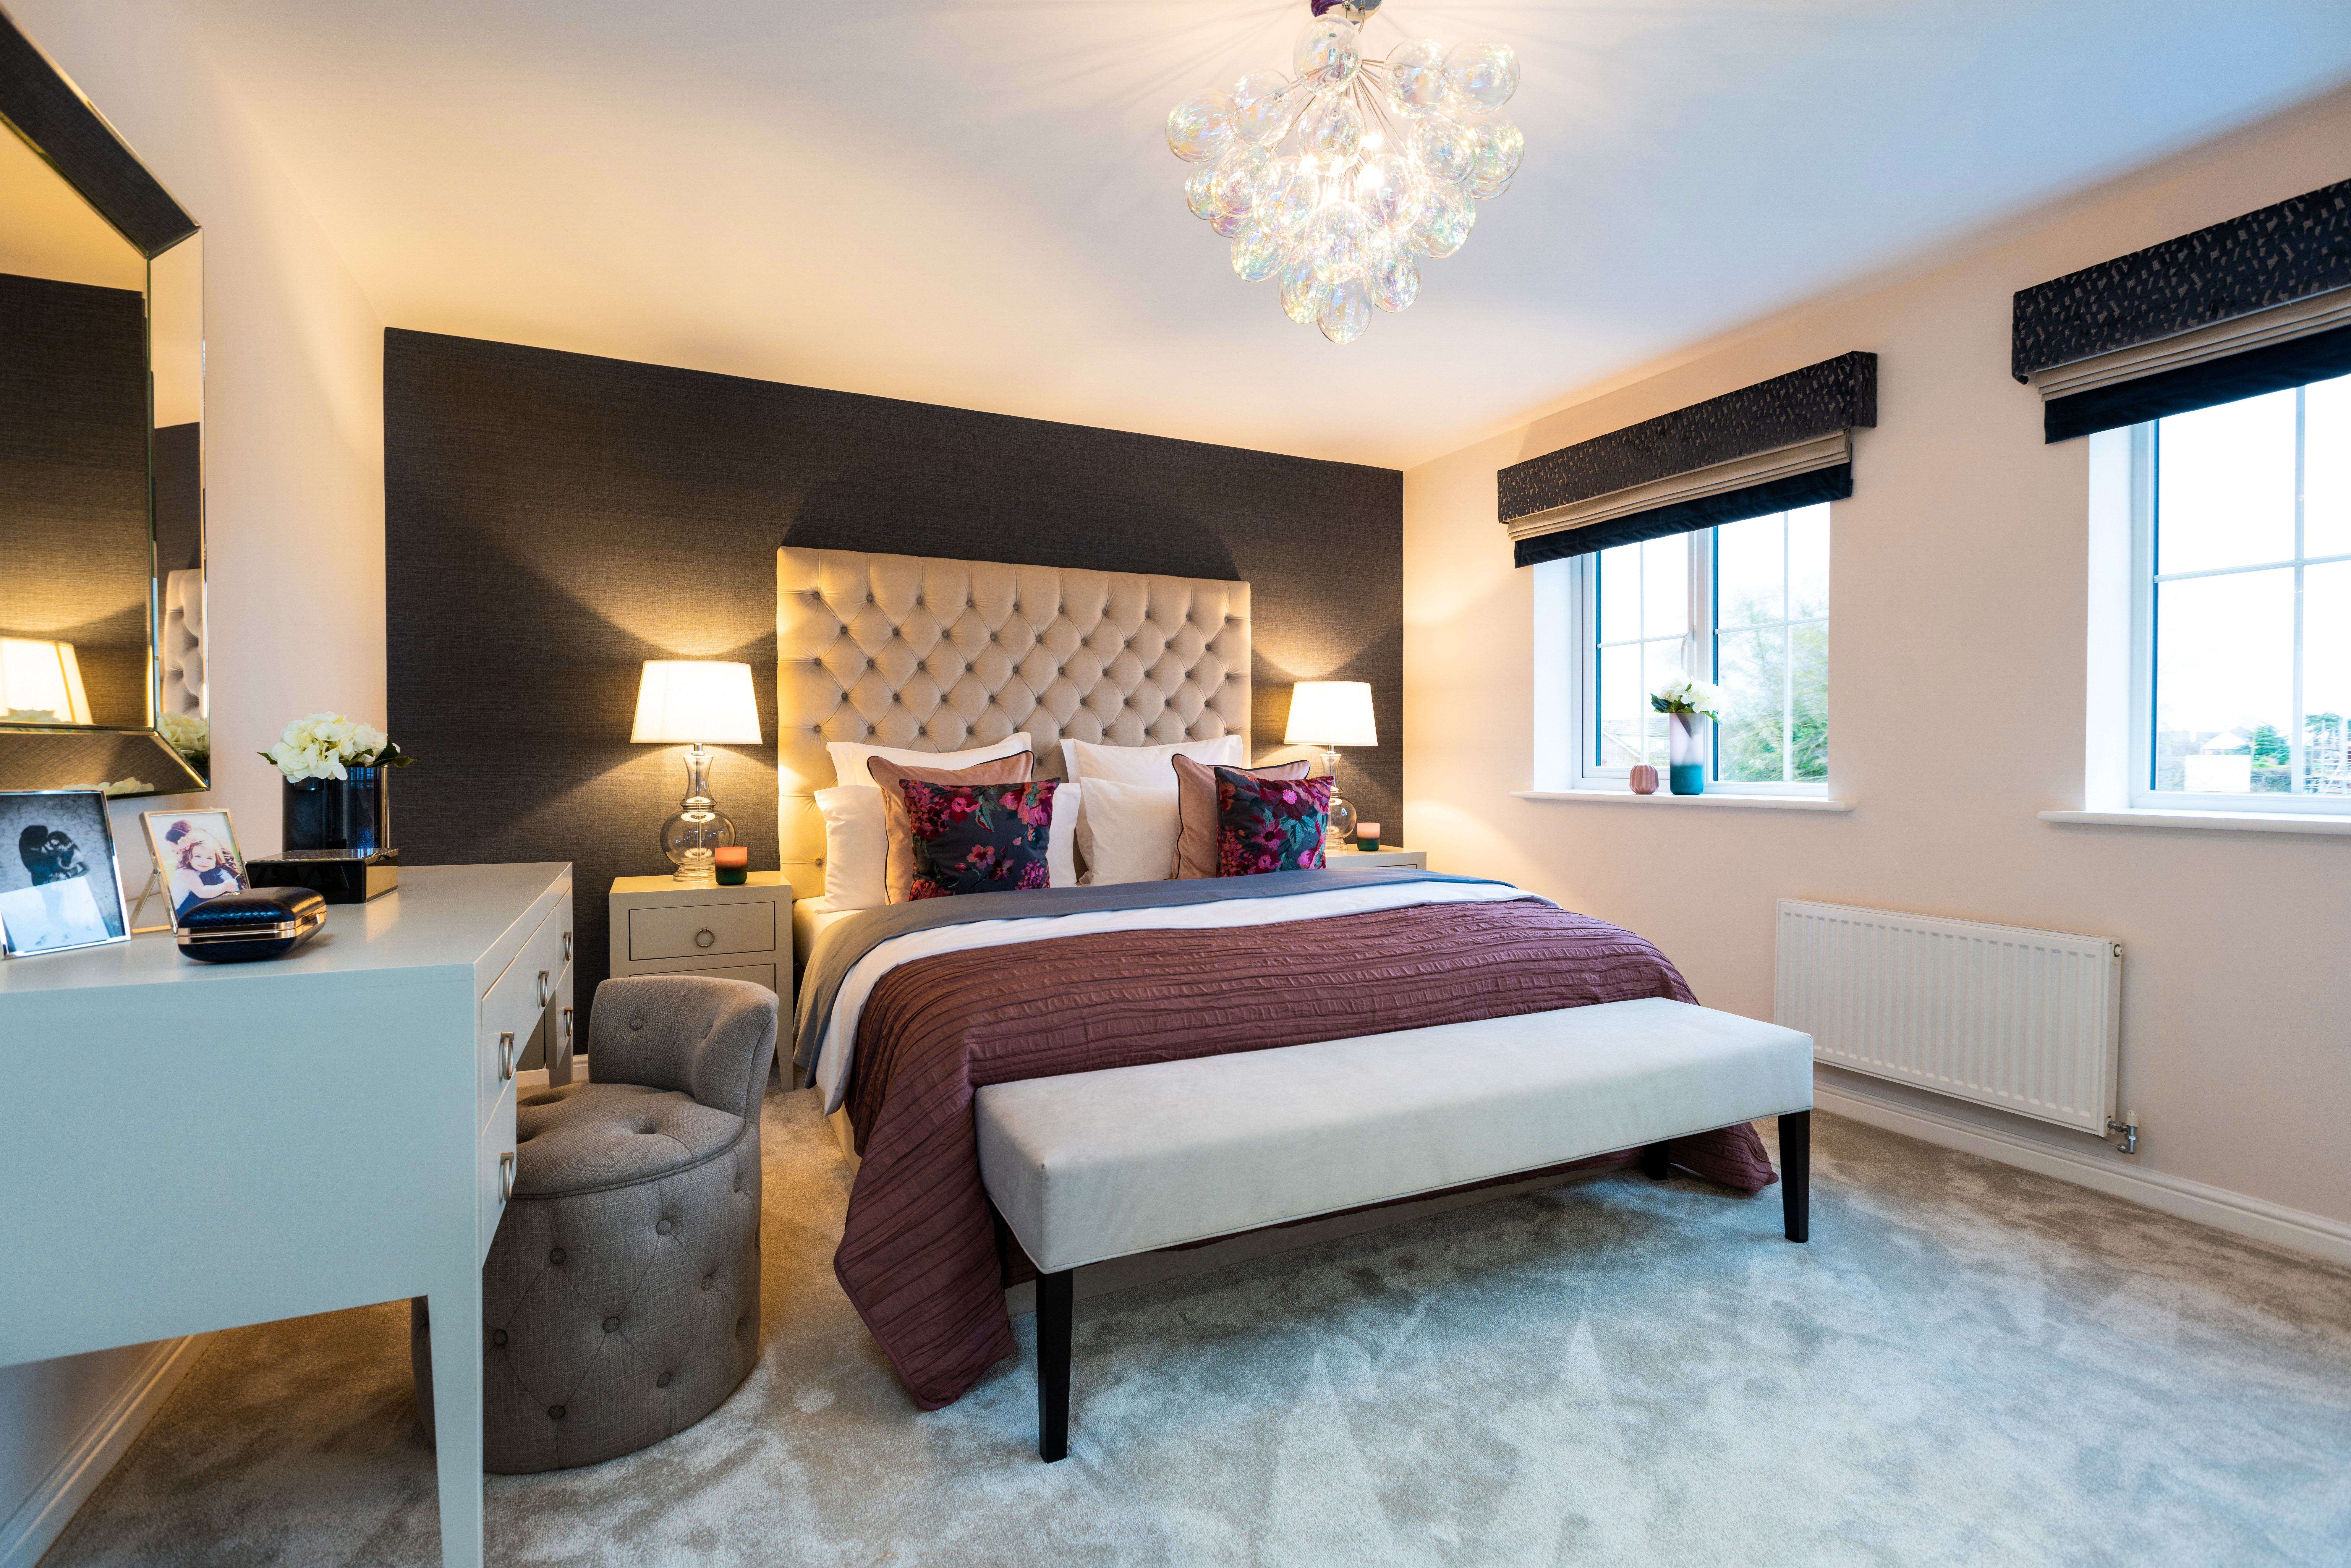 TW EM_Saxilby Hieghts_PD51_Lavenham_Bedroom 1 1